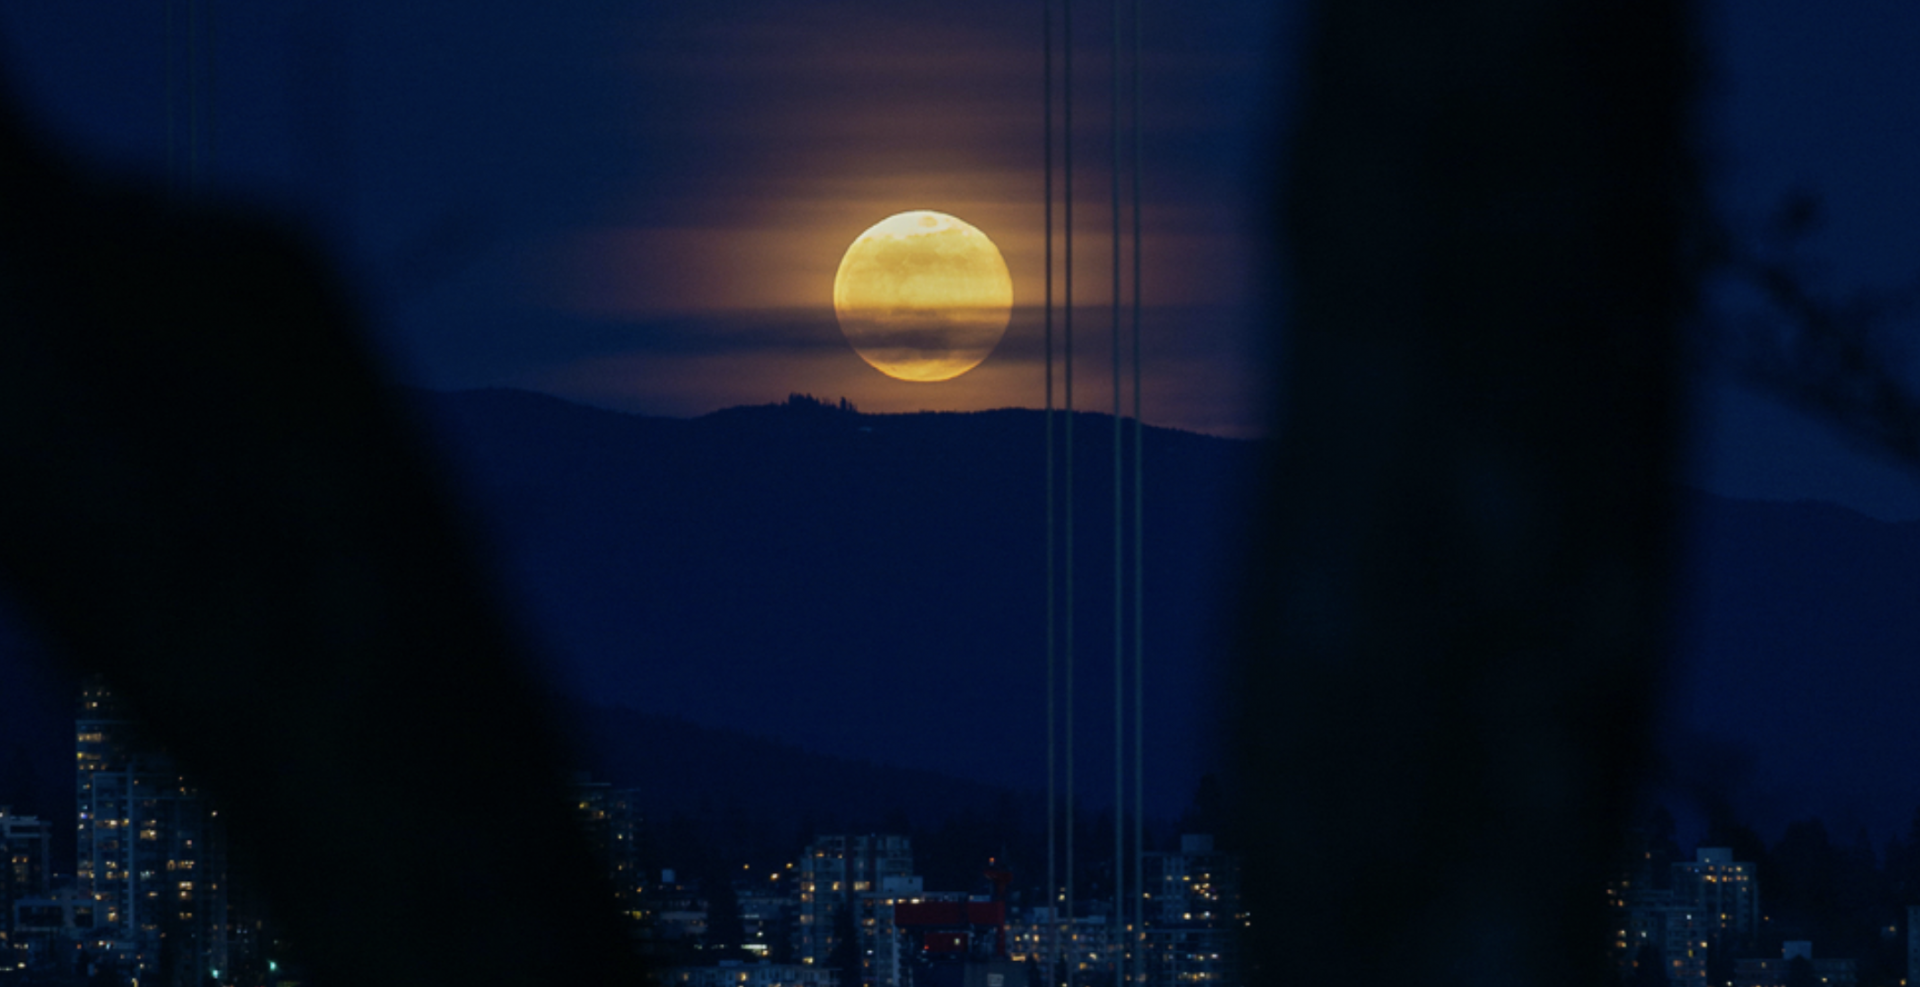 A beautiful supermoon took over the Vancouver sky last night (PHOTOS)